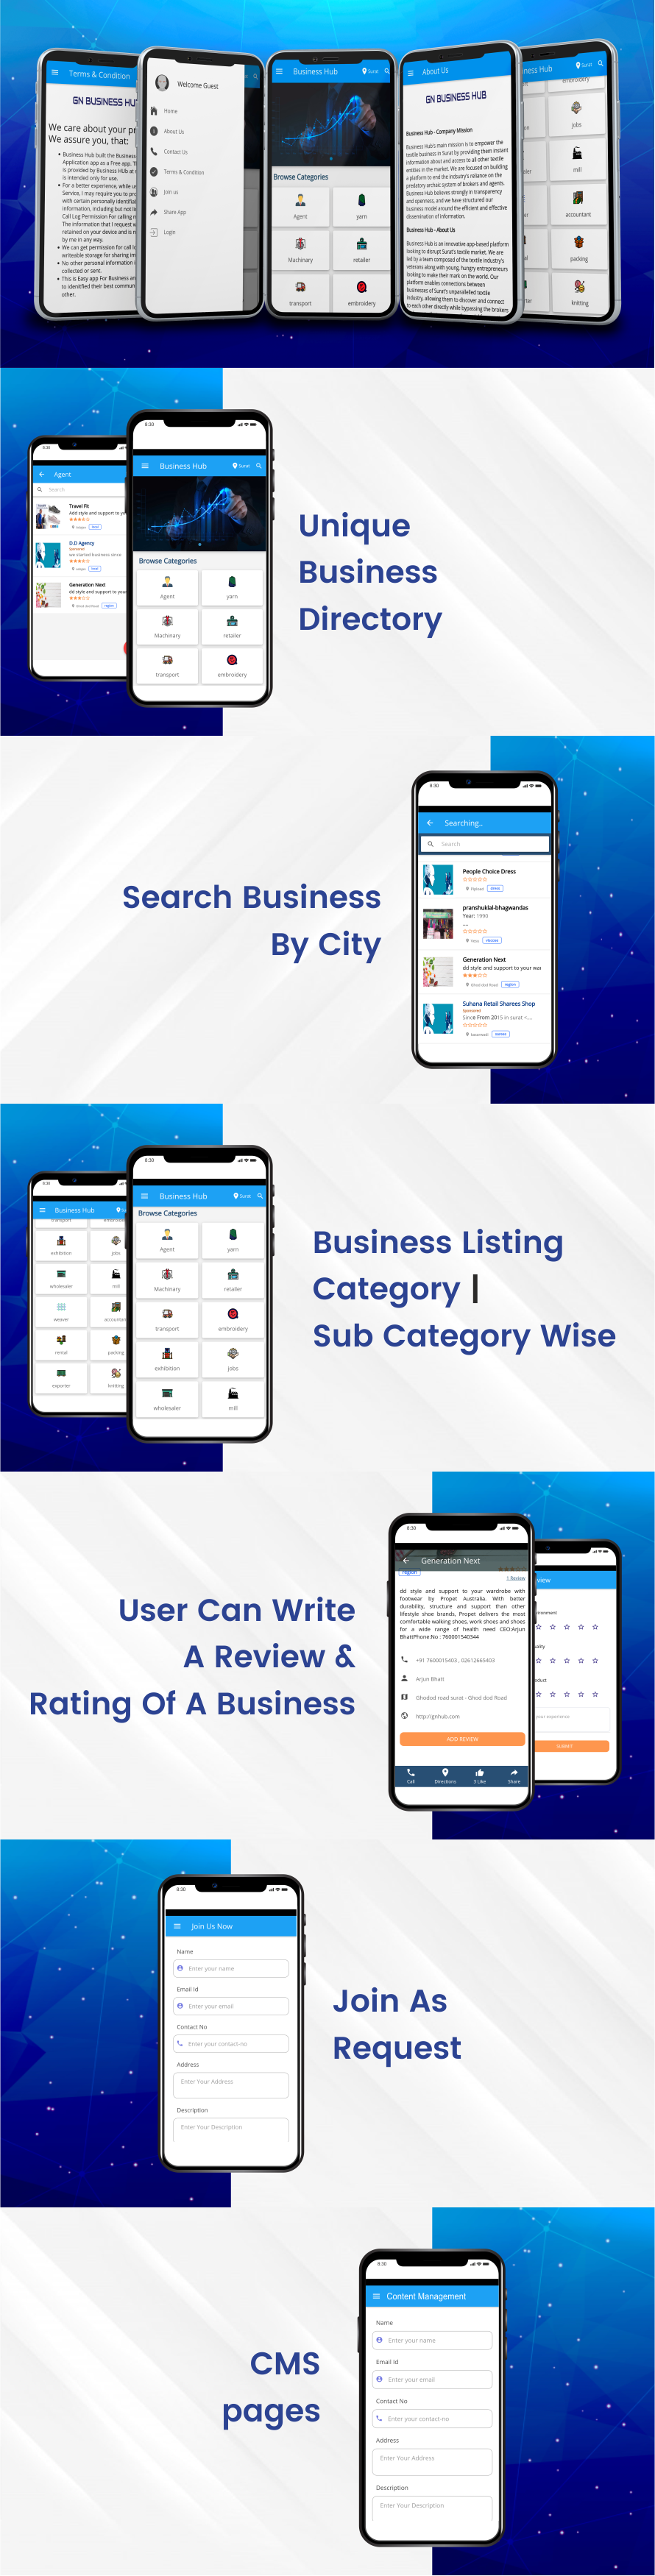 GN Business Hub - Ionic Mobile App - 1 GN Business Hub – Ionic Mobile App Nulled Free Download gn biz banner desc